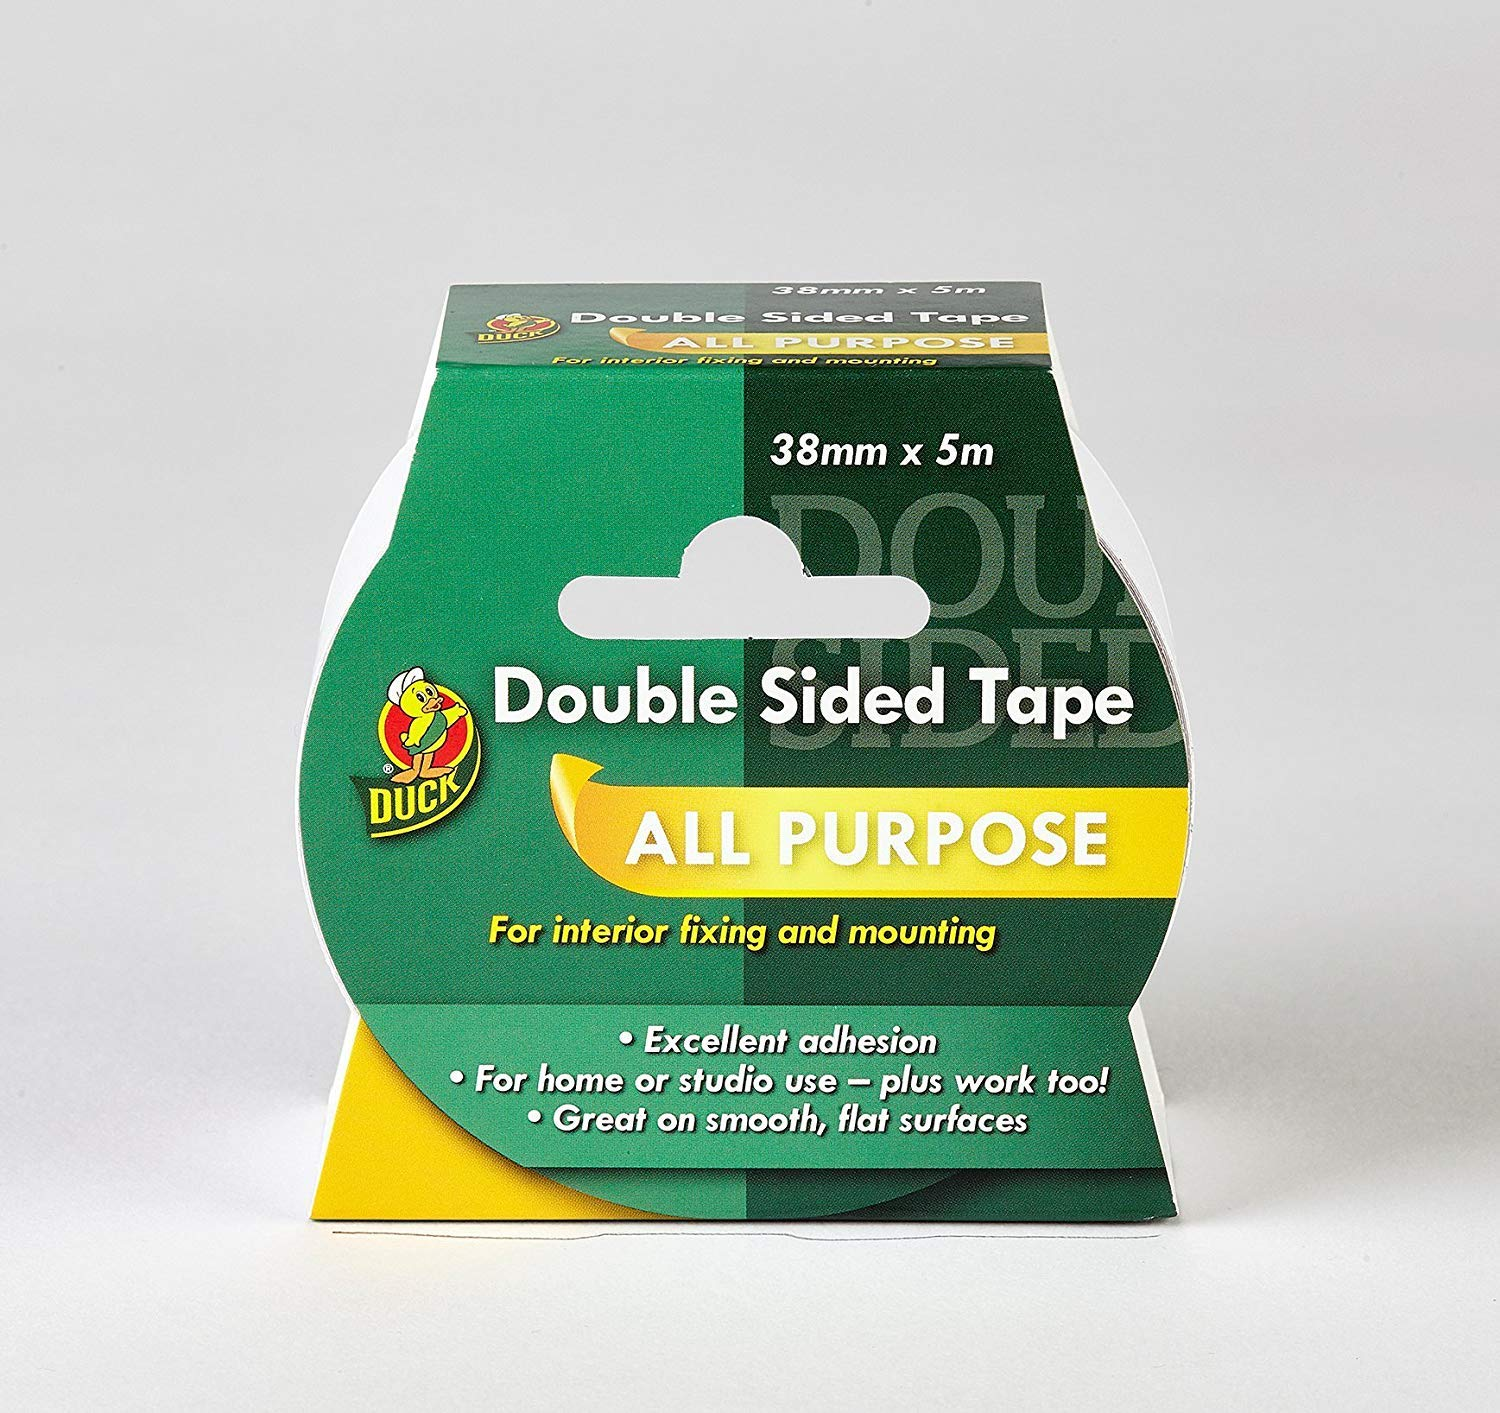 Duck Double Sided Interior Tape - 38 mm x 5 m Shurtape 206982